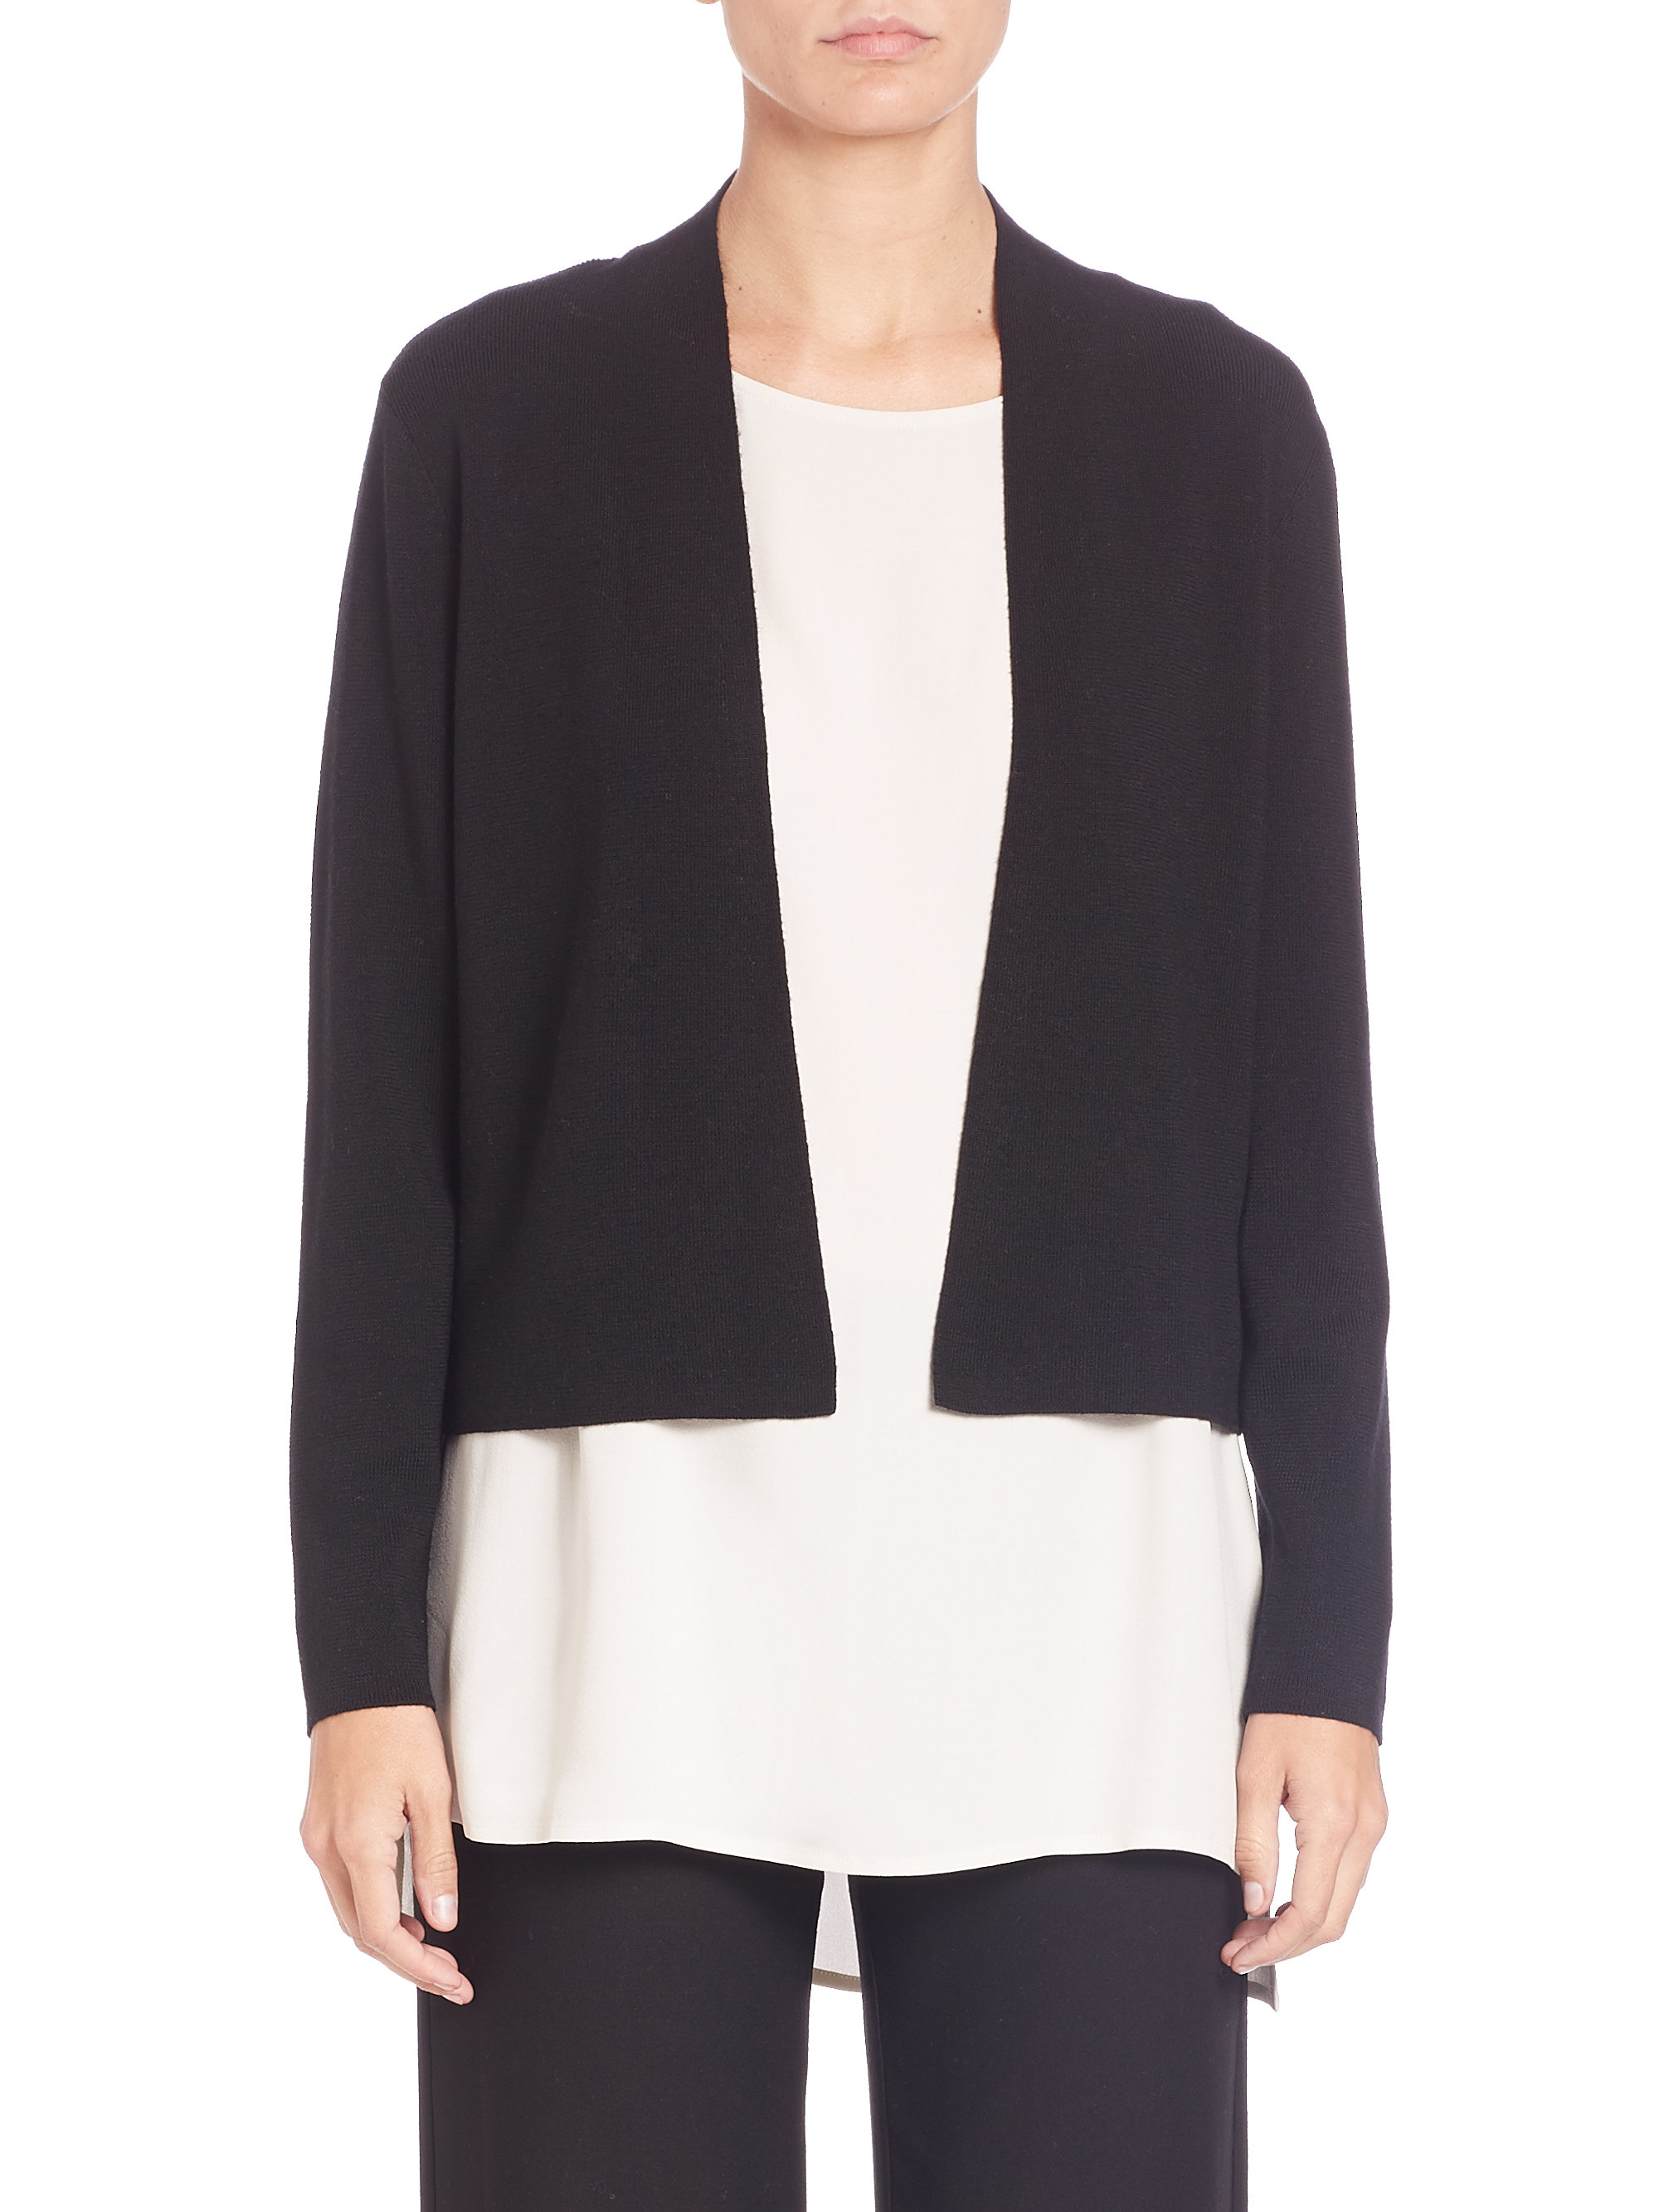 Eileen fisher Merino Wool Ribbed Short Cardigan in Black | Lyst